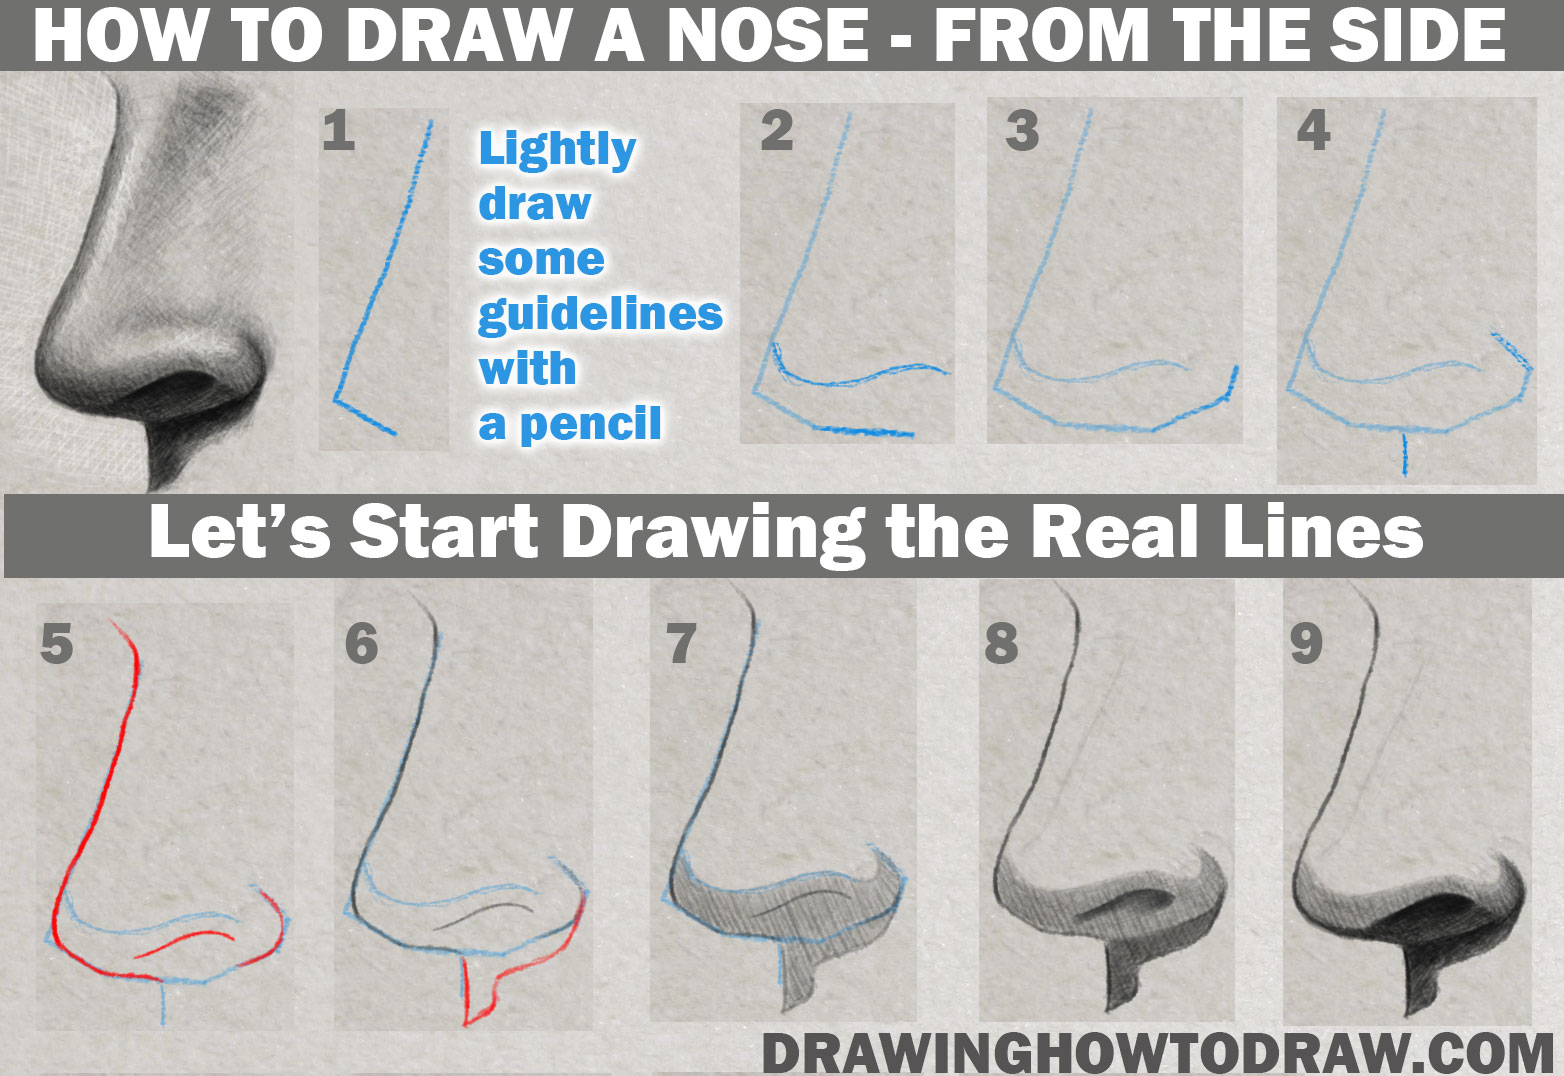 How To Draw And Shade A Realistic Nose Side View In Pencil Or Graphite Simple Steps Lesson How To Draw Step By Step Drawing Tutorials